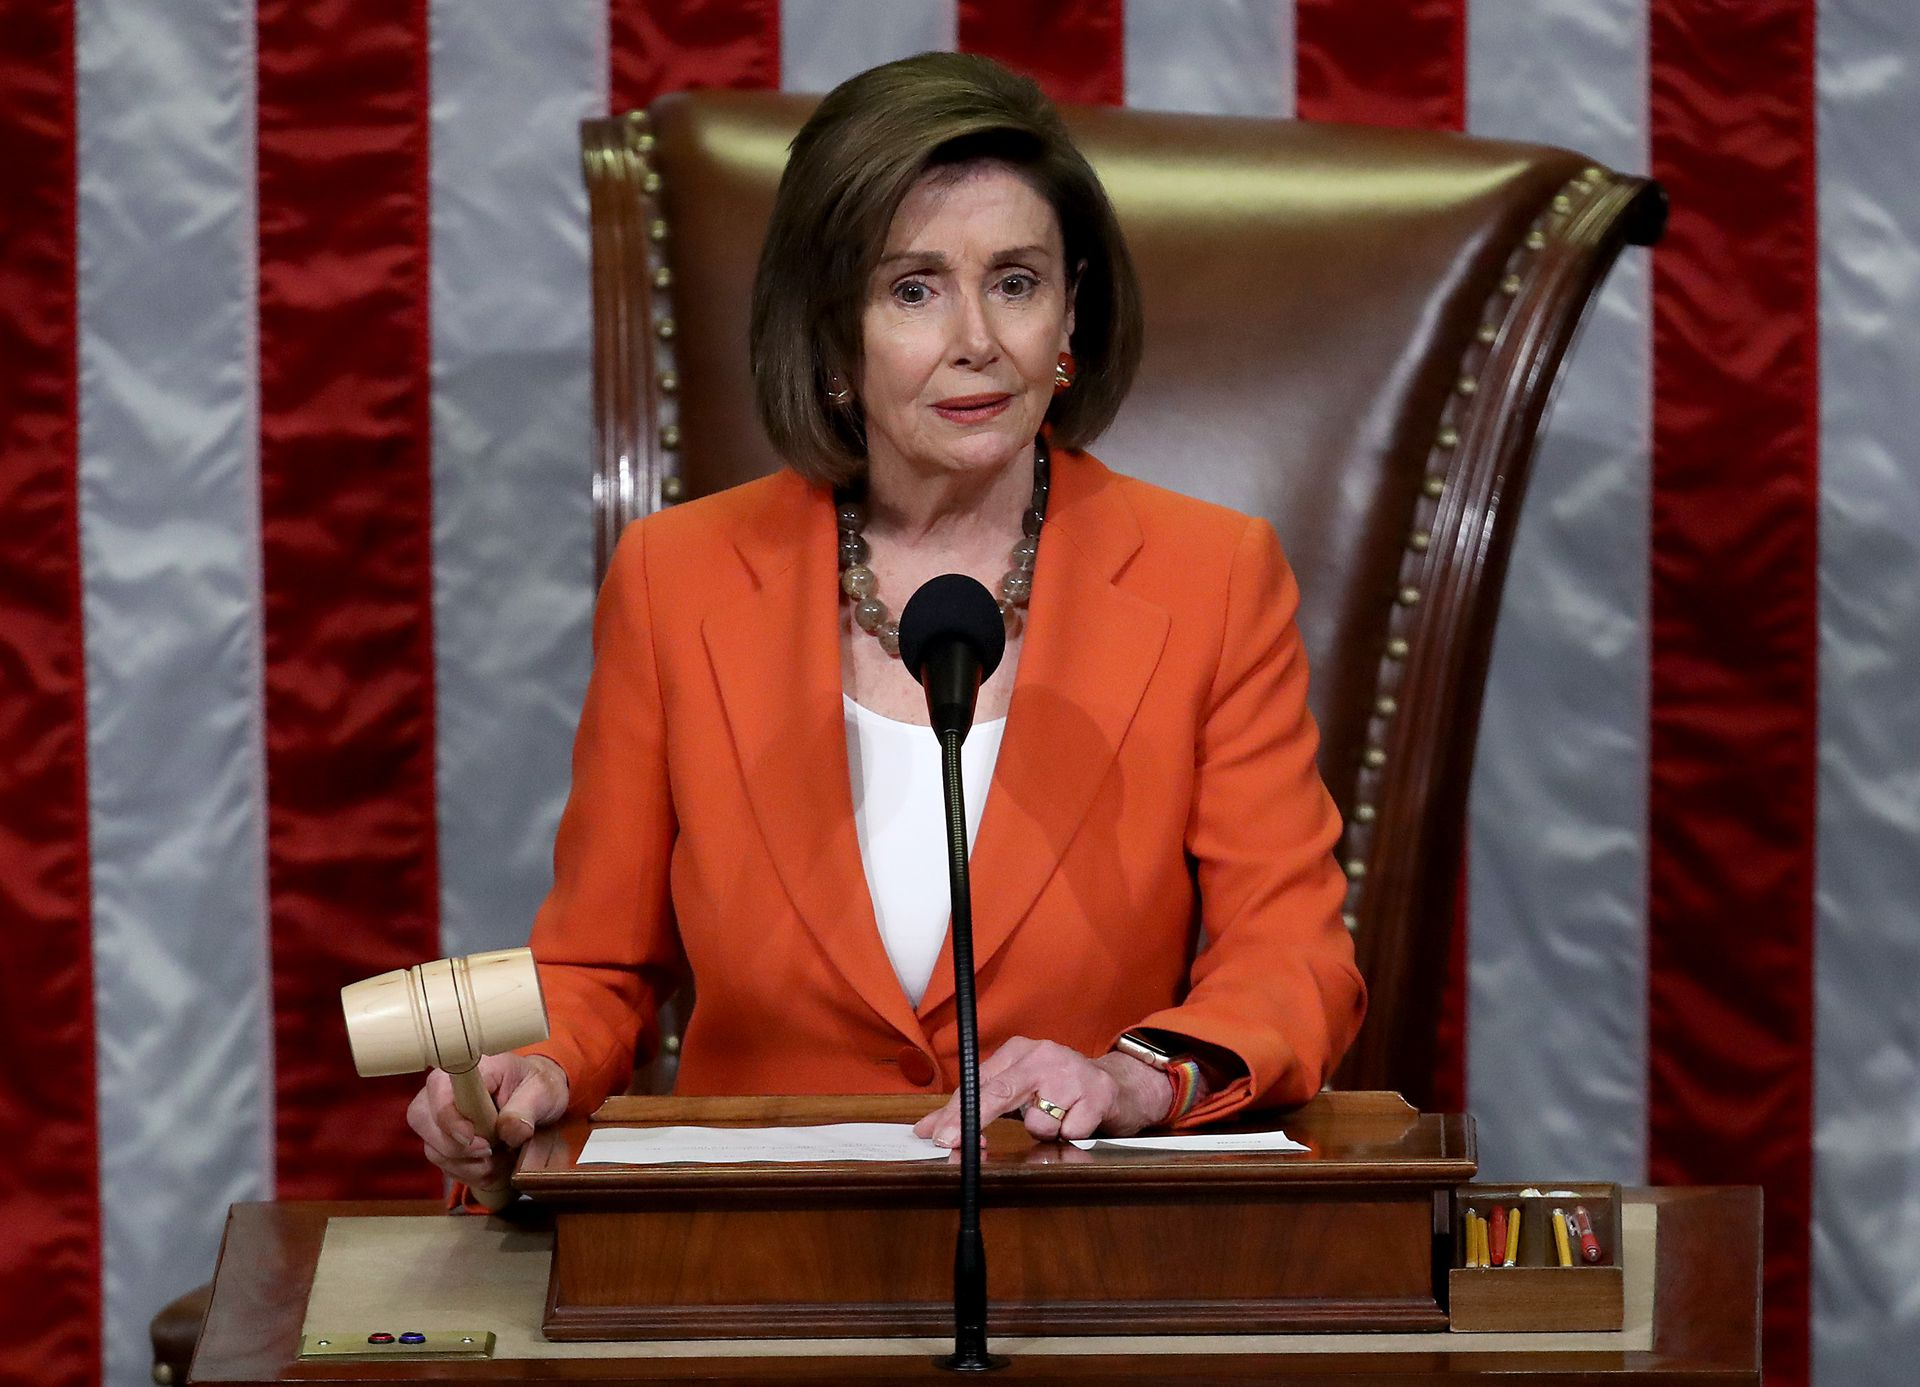 Pelosi lists House-passed bills stalled in Senate amid impeachment attacks